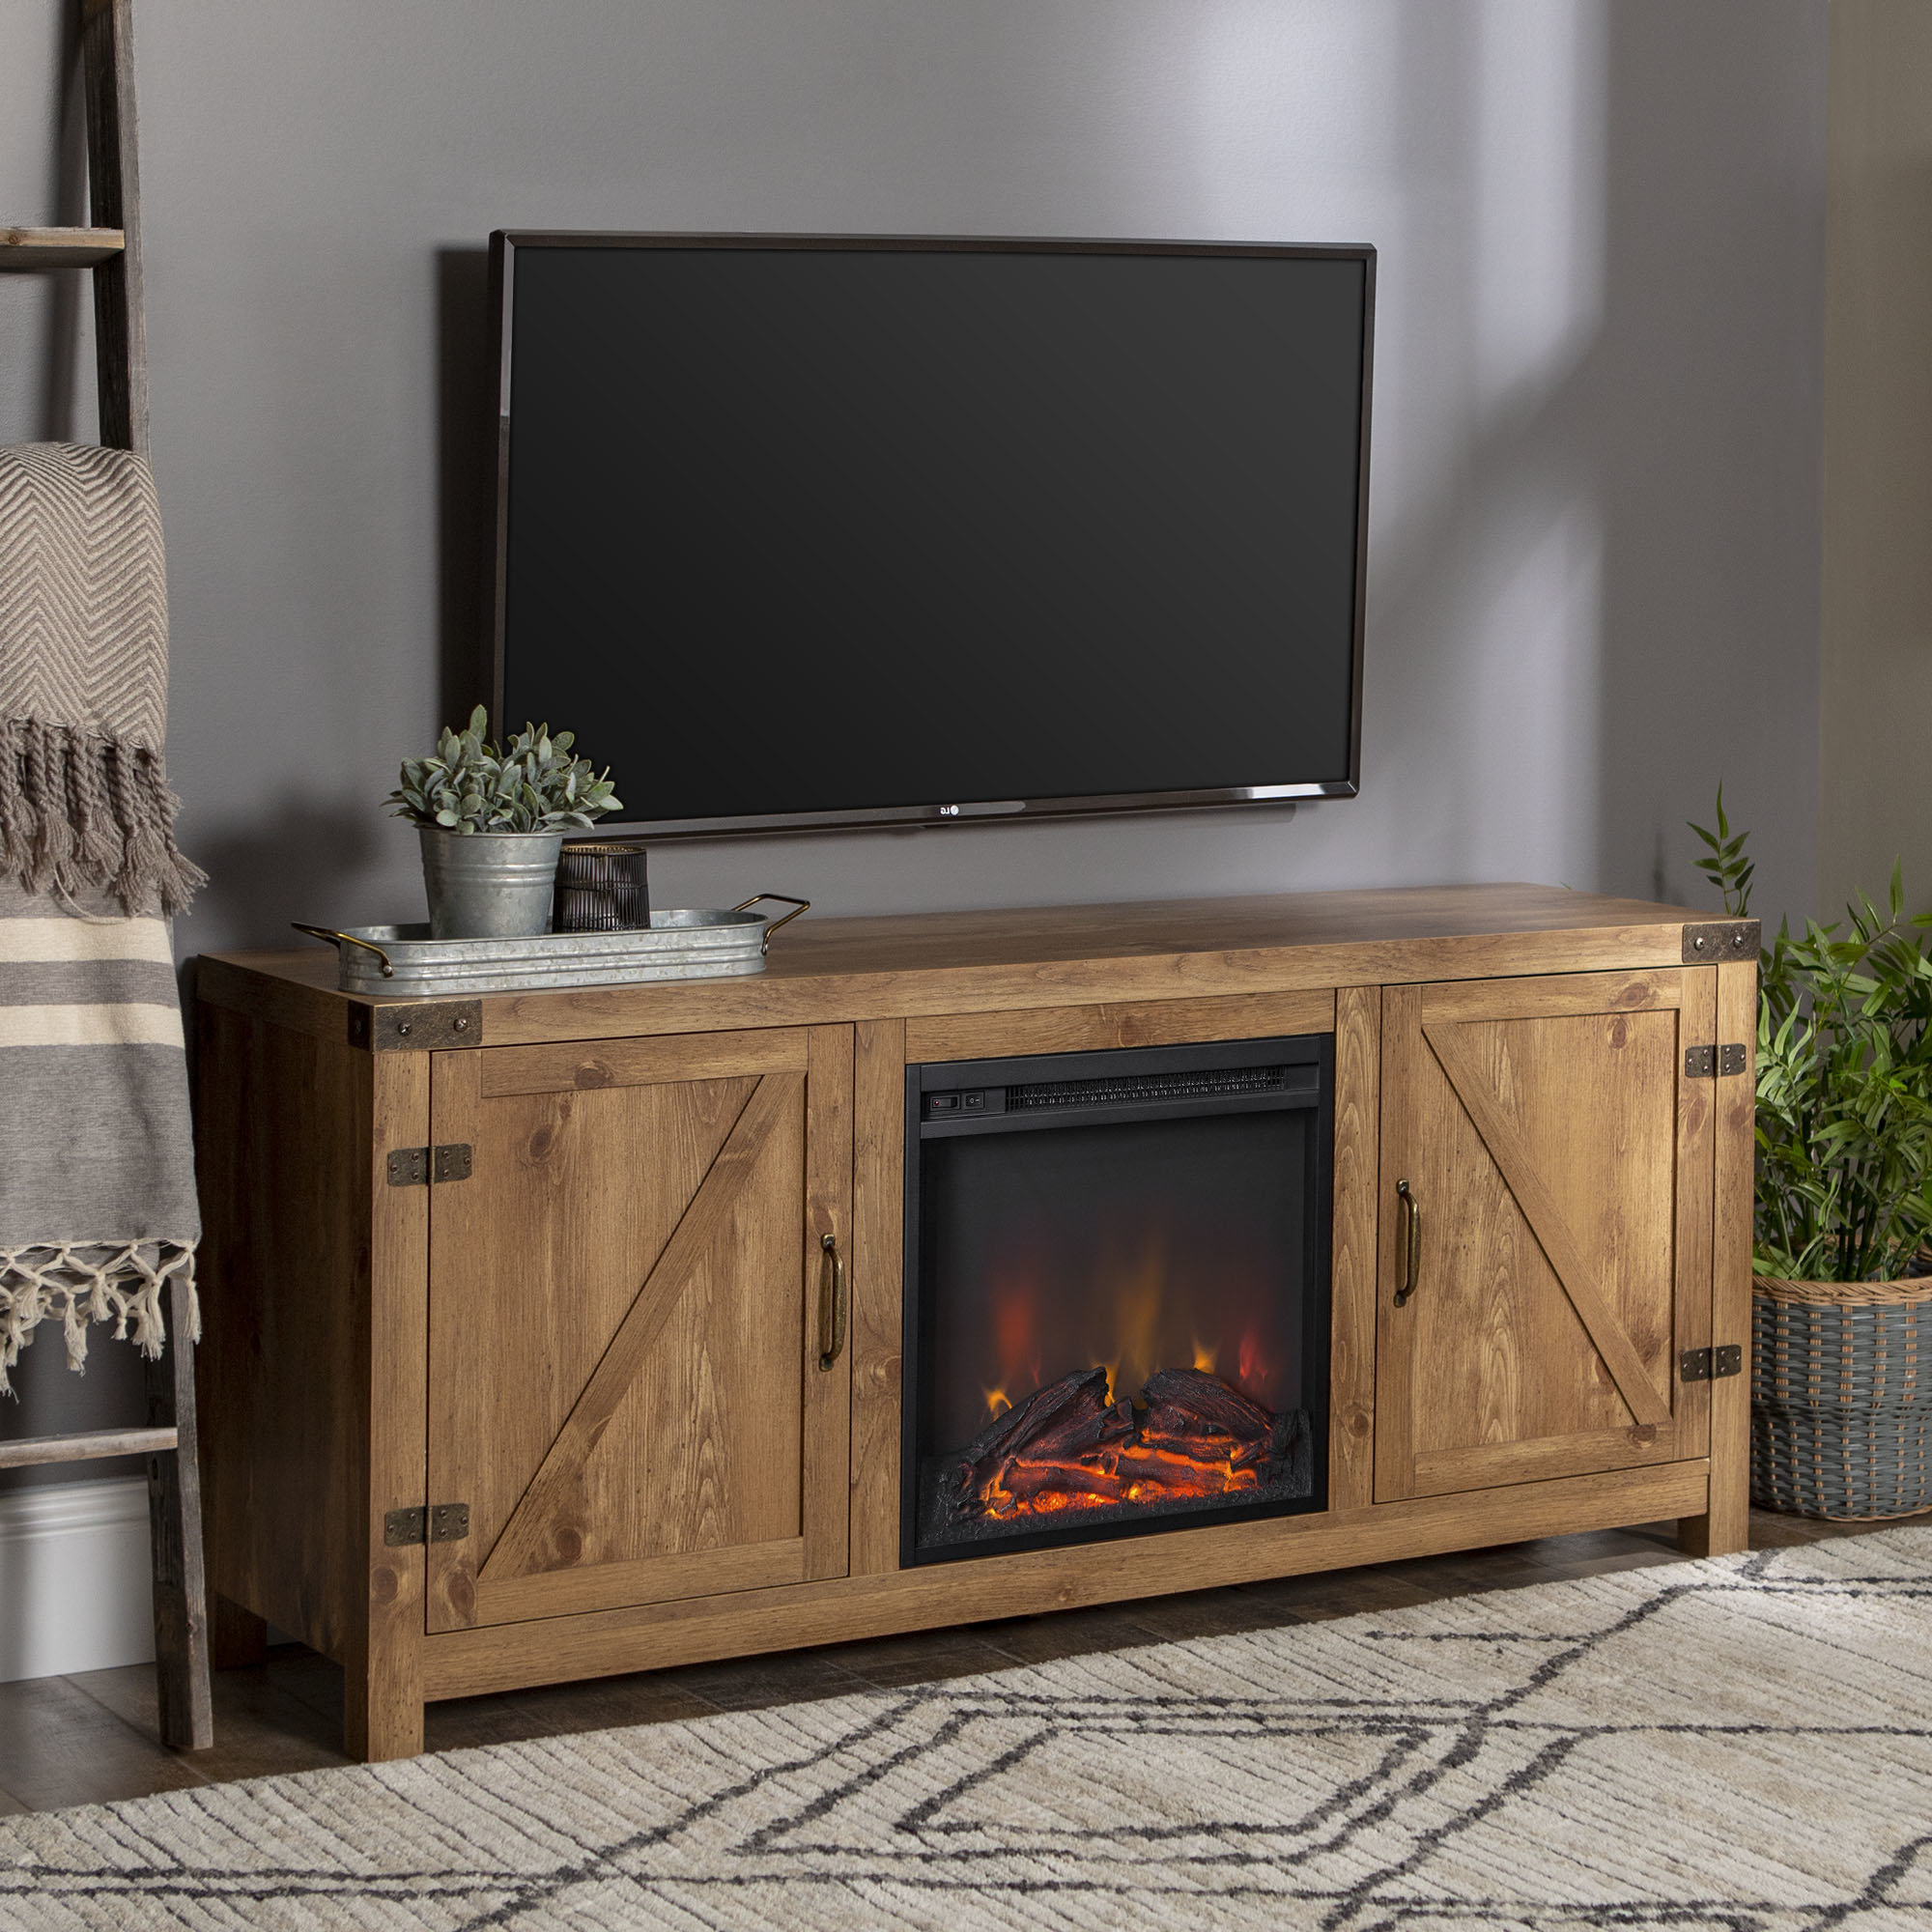 Sinclair Grey 54 Inch Tv Stands For Most Up To Date 60 69 Inch Tv Stand Fireplaces You'll Love (View 16 of 20)